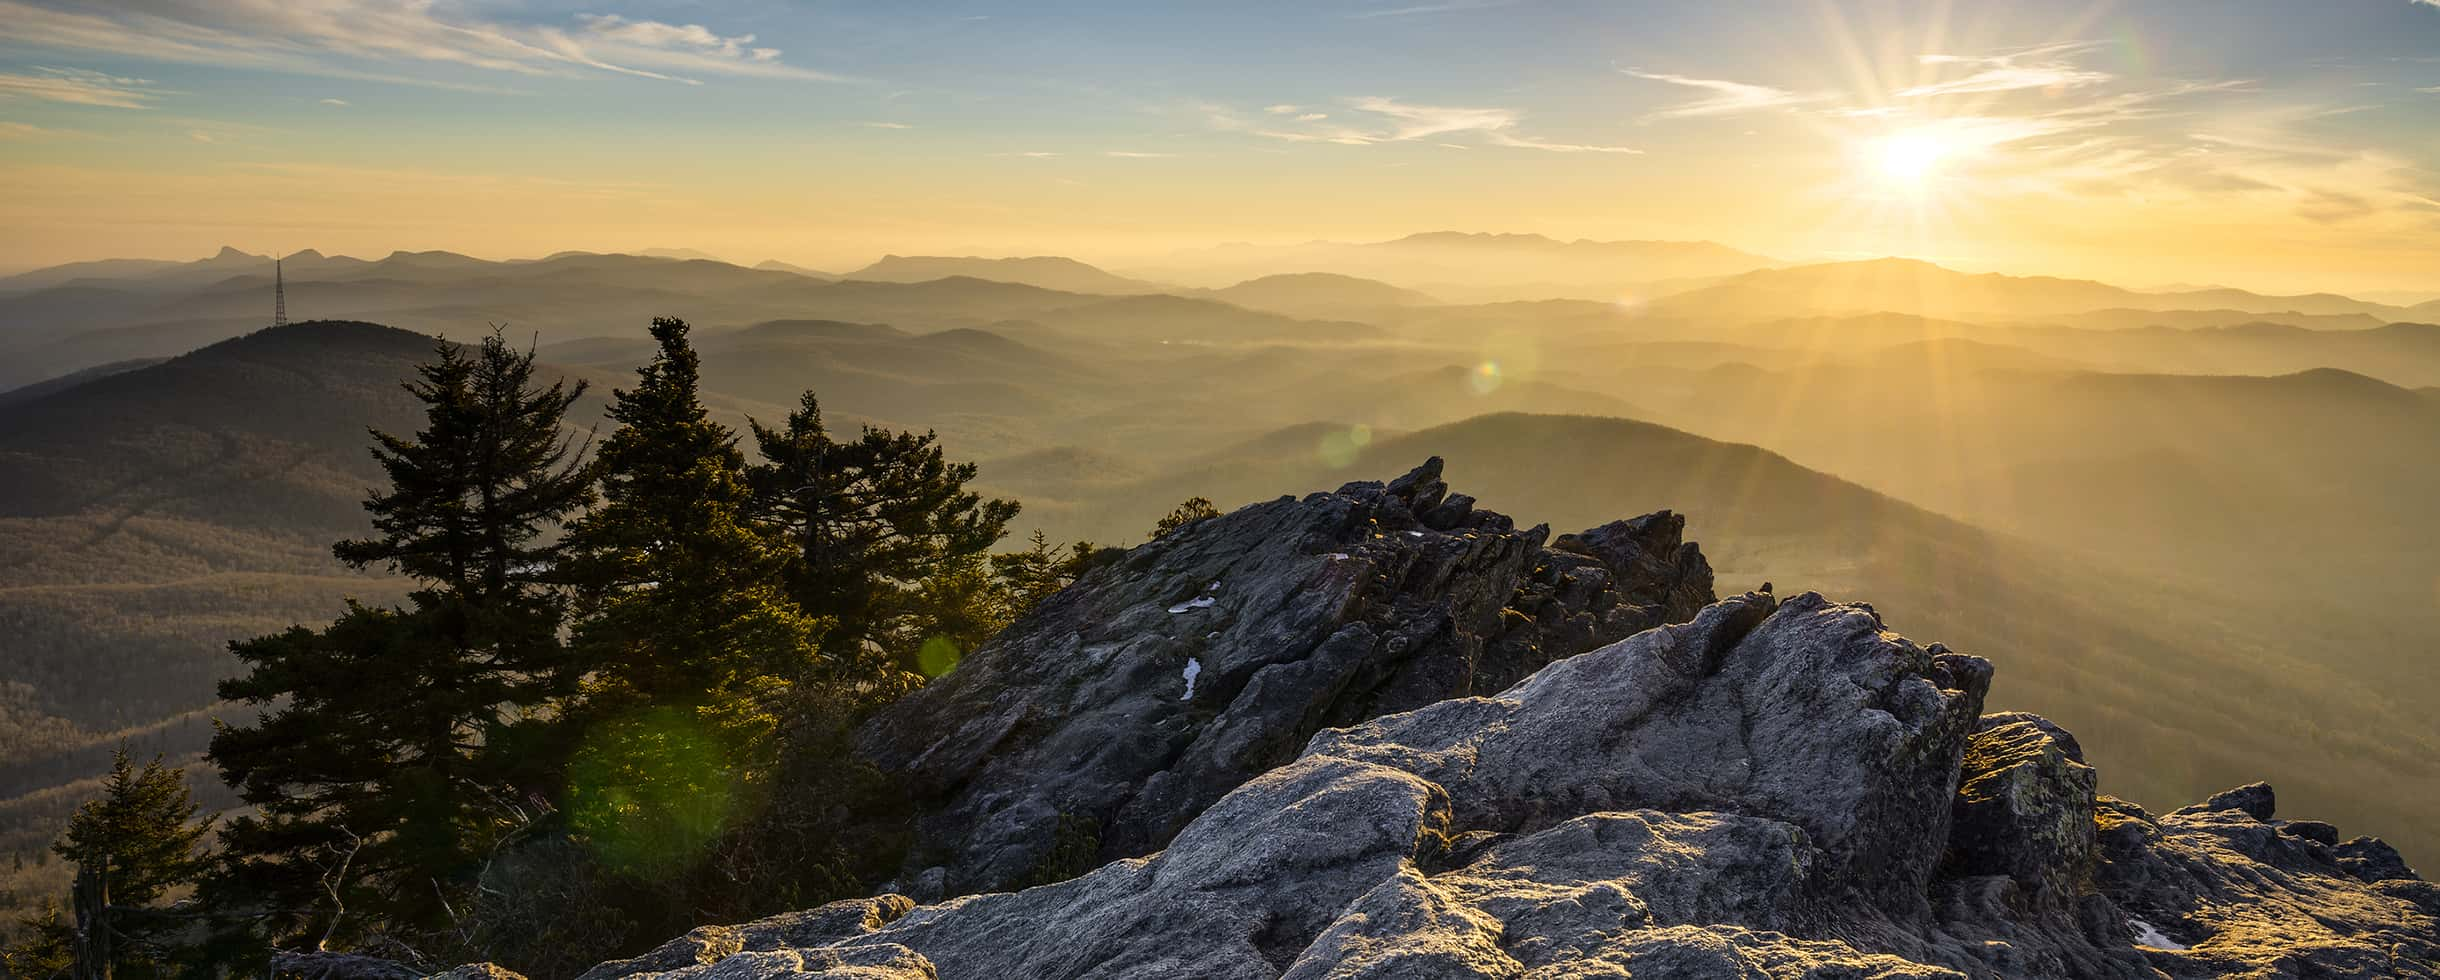 Grandfather Mountain - one of the Top Things to Do near Boone, NC